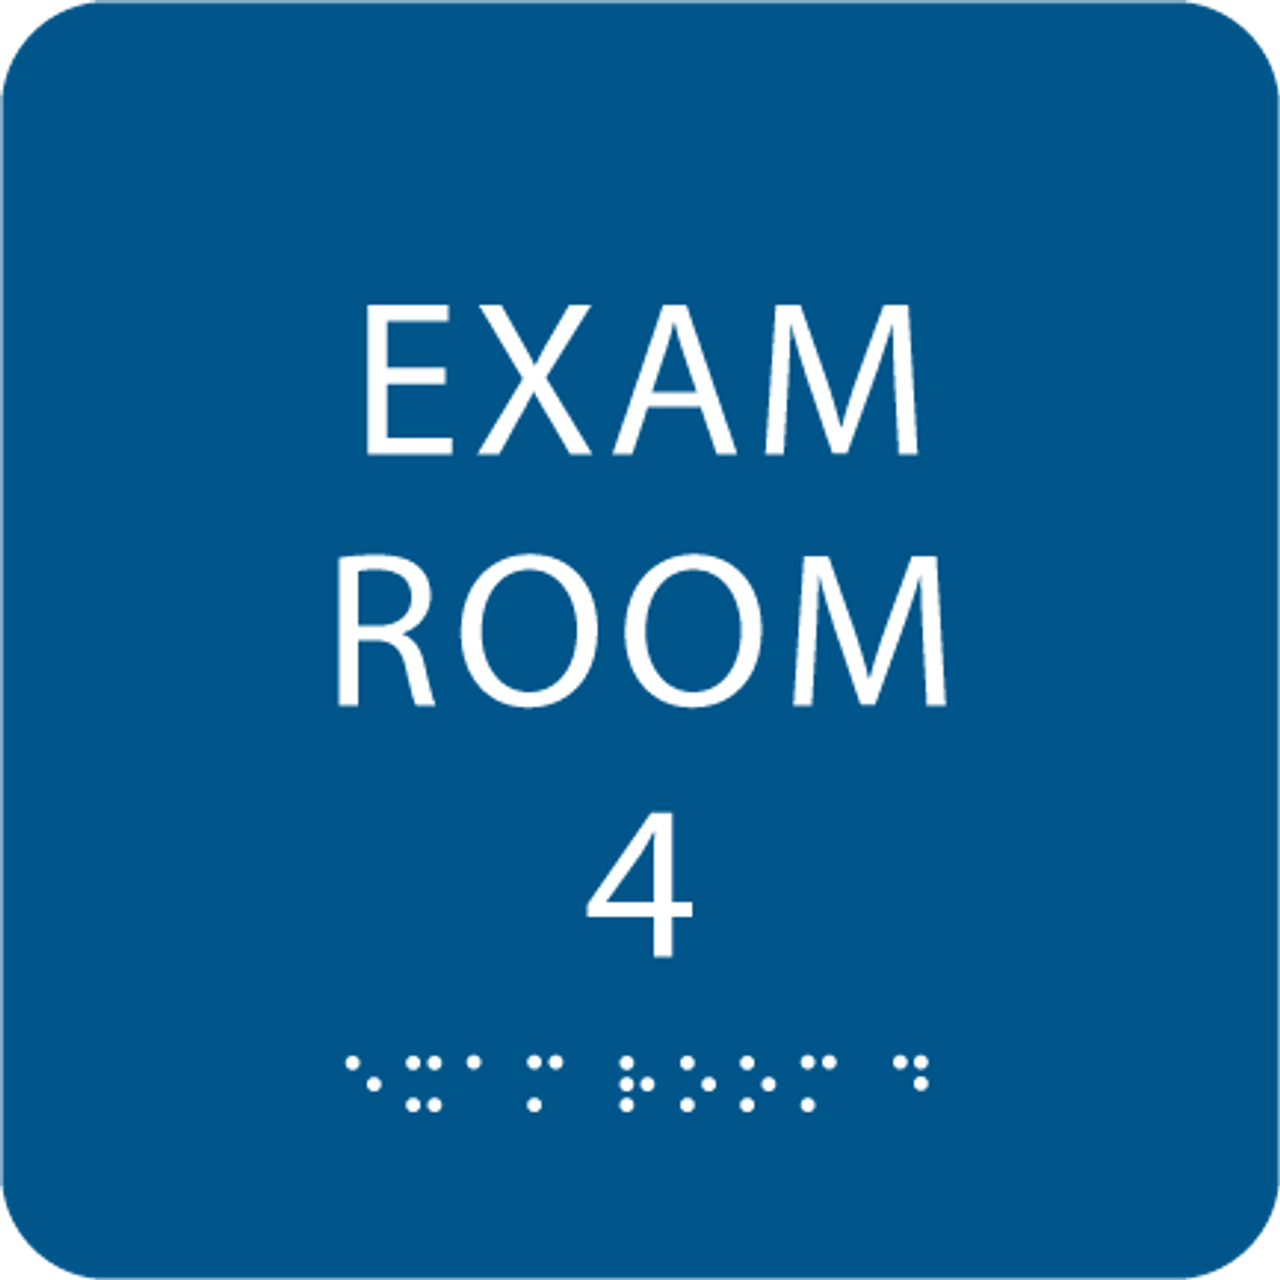 Royal Blue Exam Room 4 ADA Sign